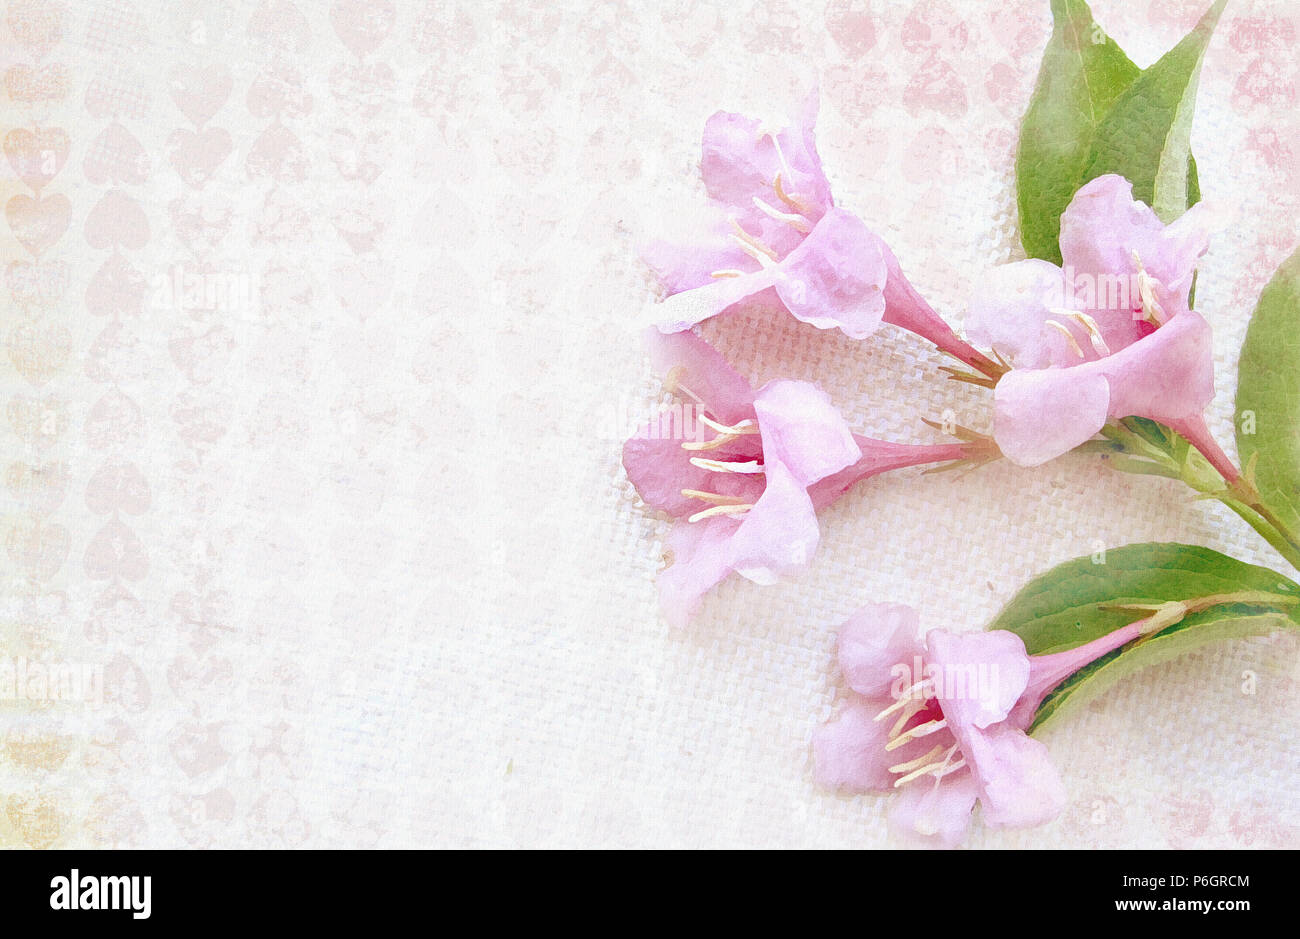 Light Patterned Textured Background With Pink Flowers On A